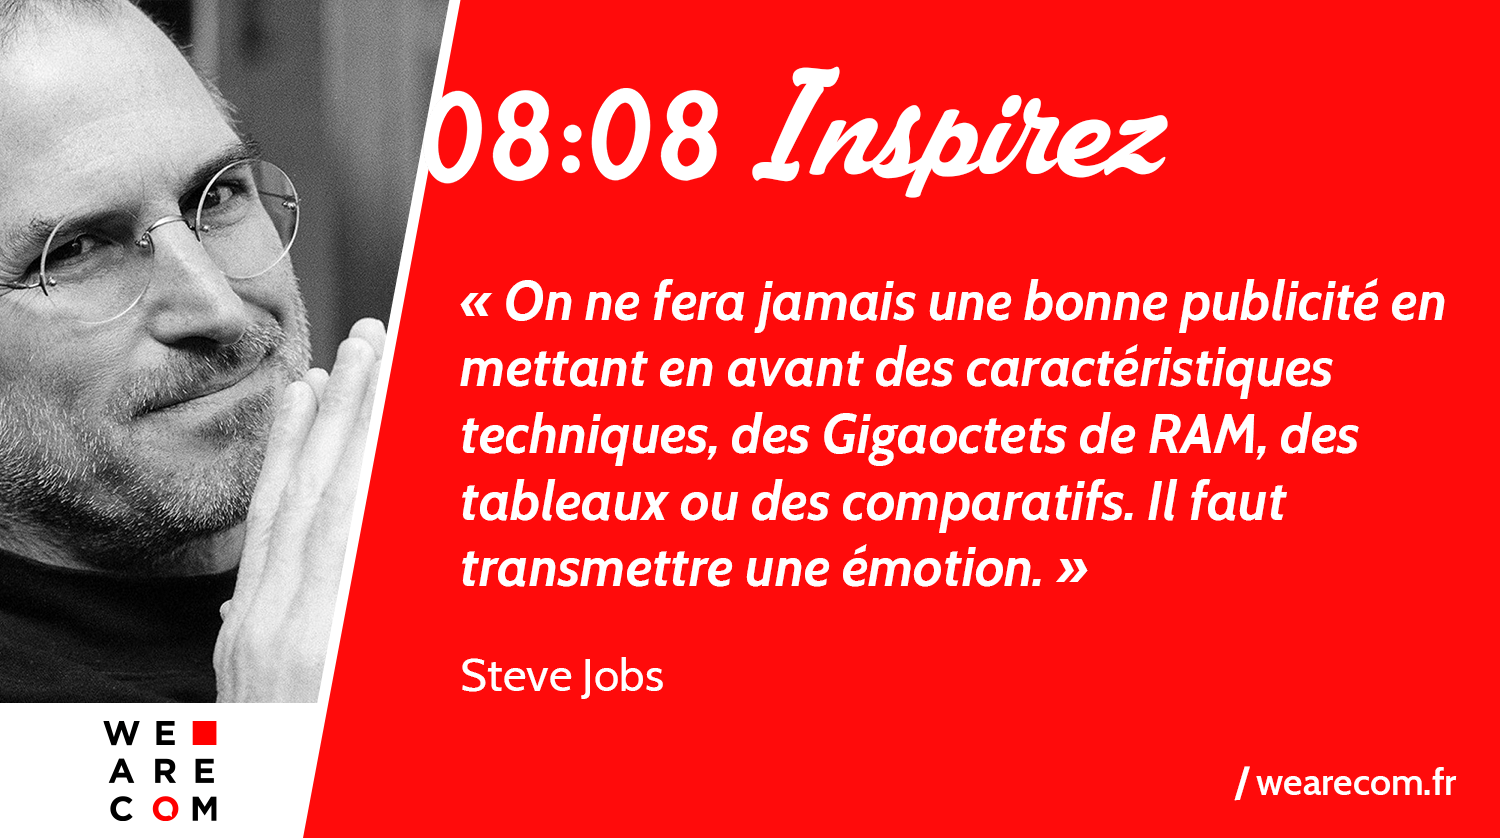 Steve_Jobs_publicité_emotion_wearecom_citation_communication